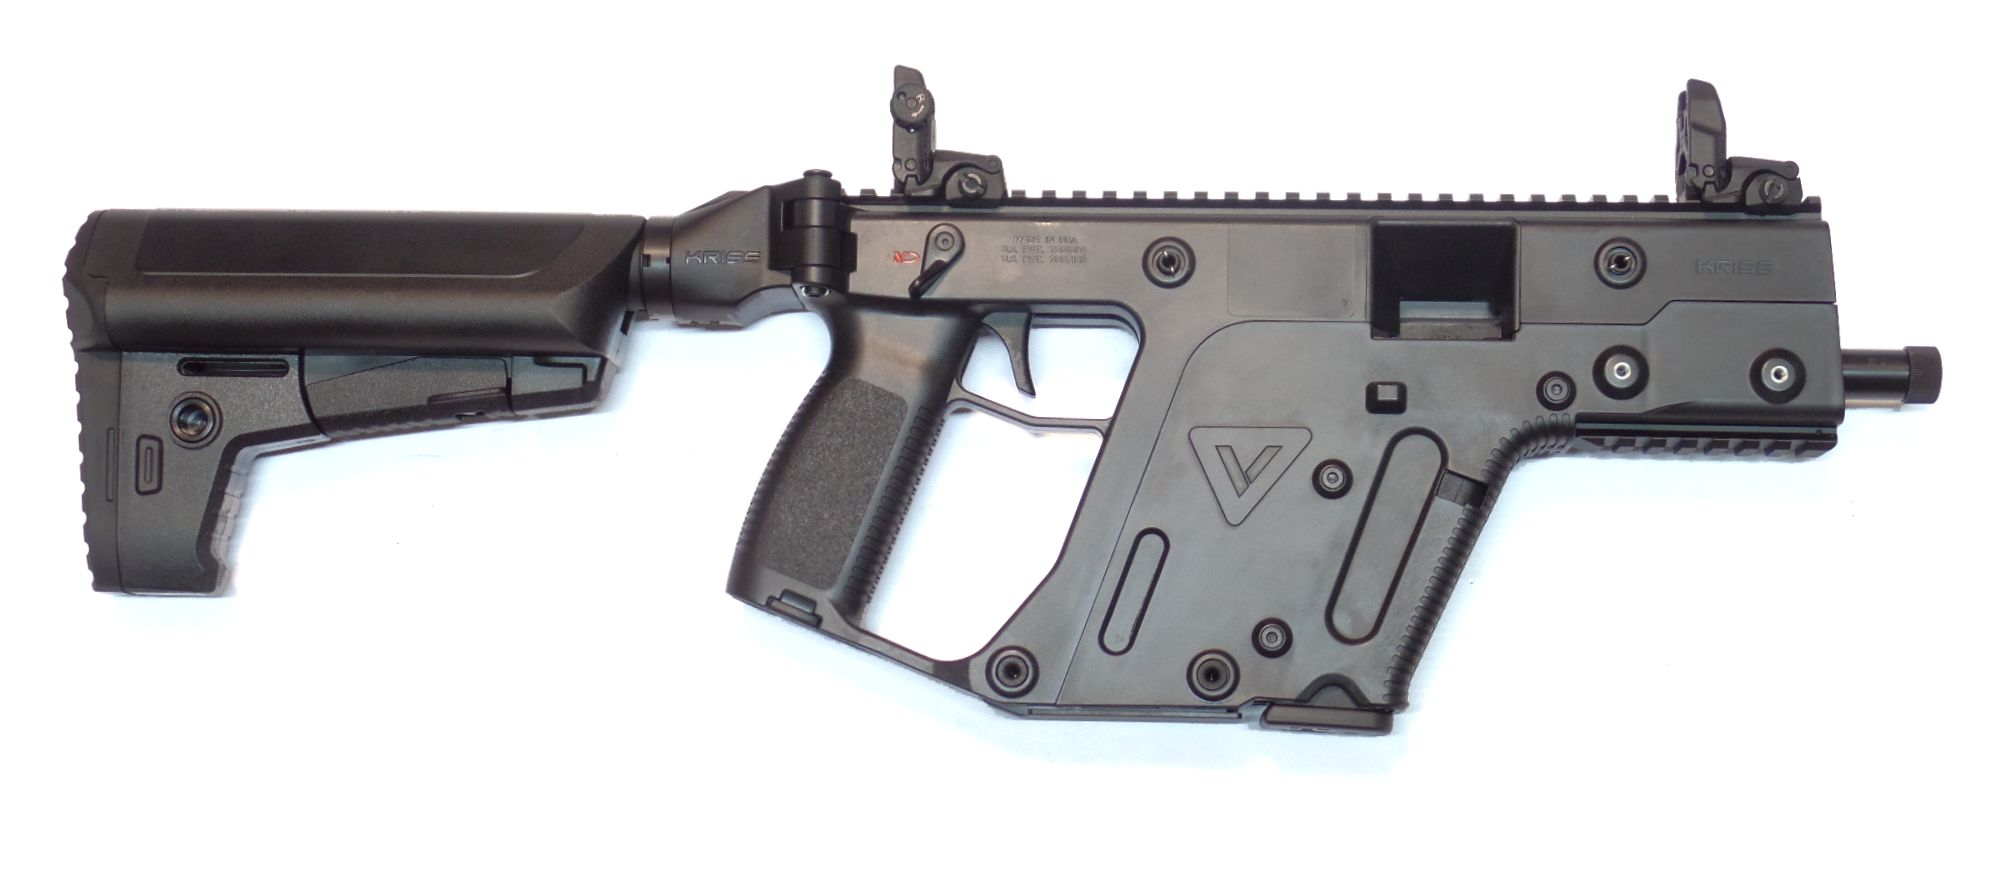 KRISS Vector CRB Carbine calibre .45ACP